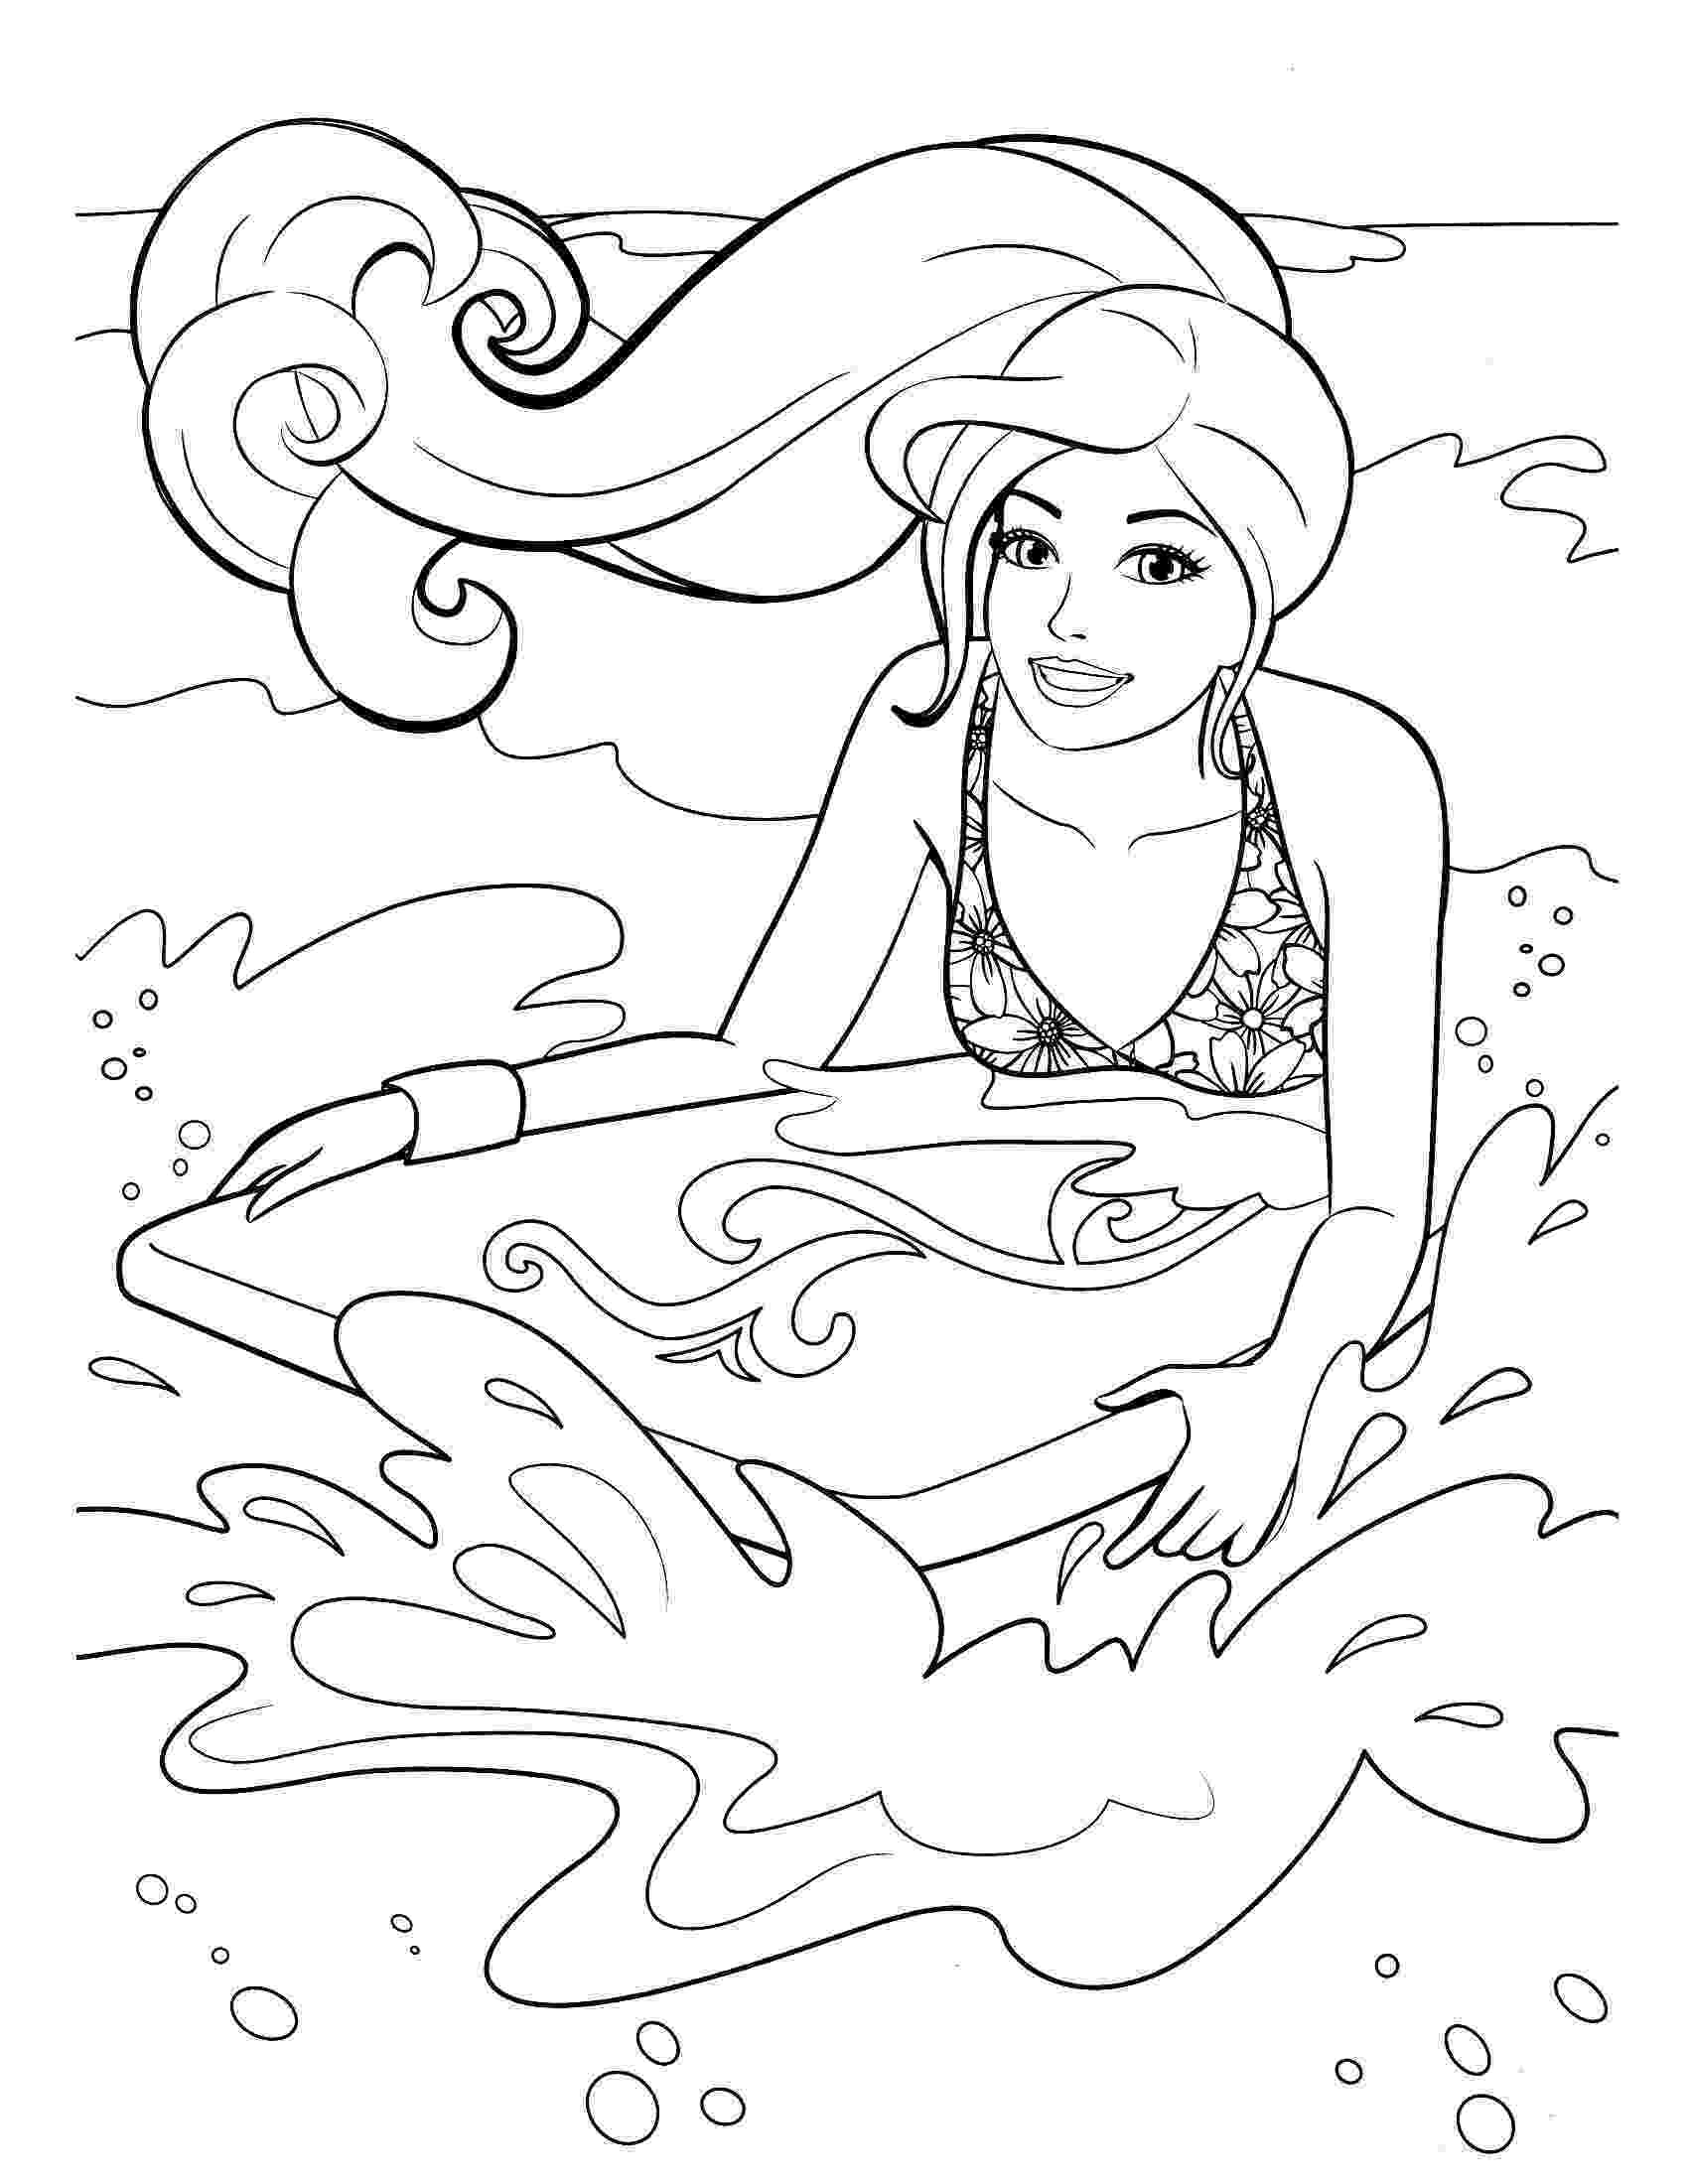 barbie free coloring pages barbie coloring pages pages barbie free coloring